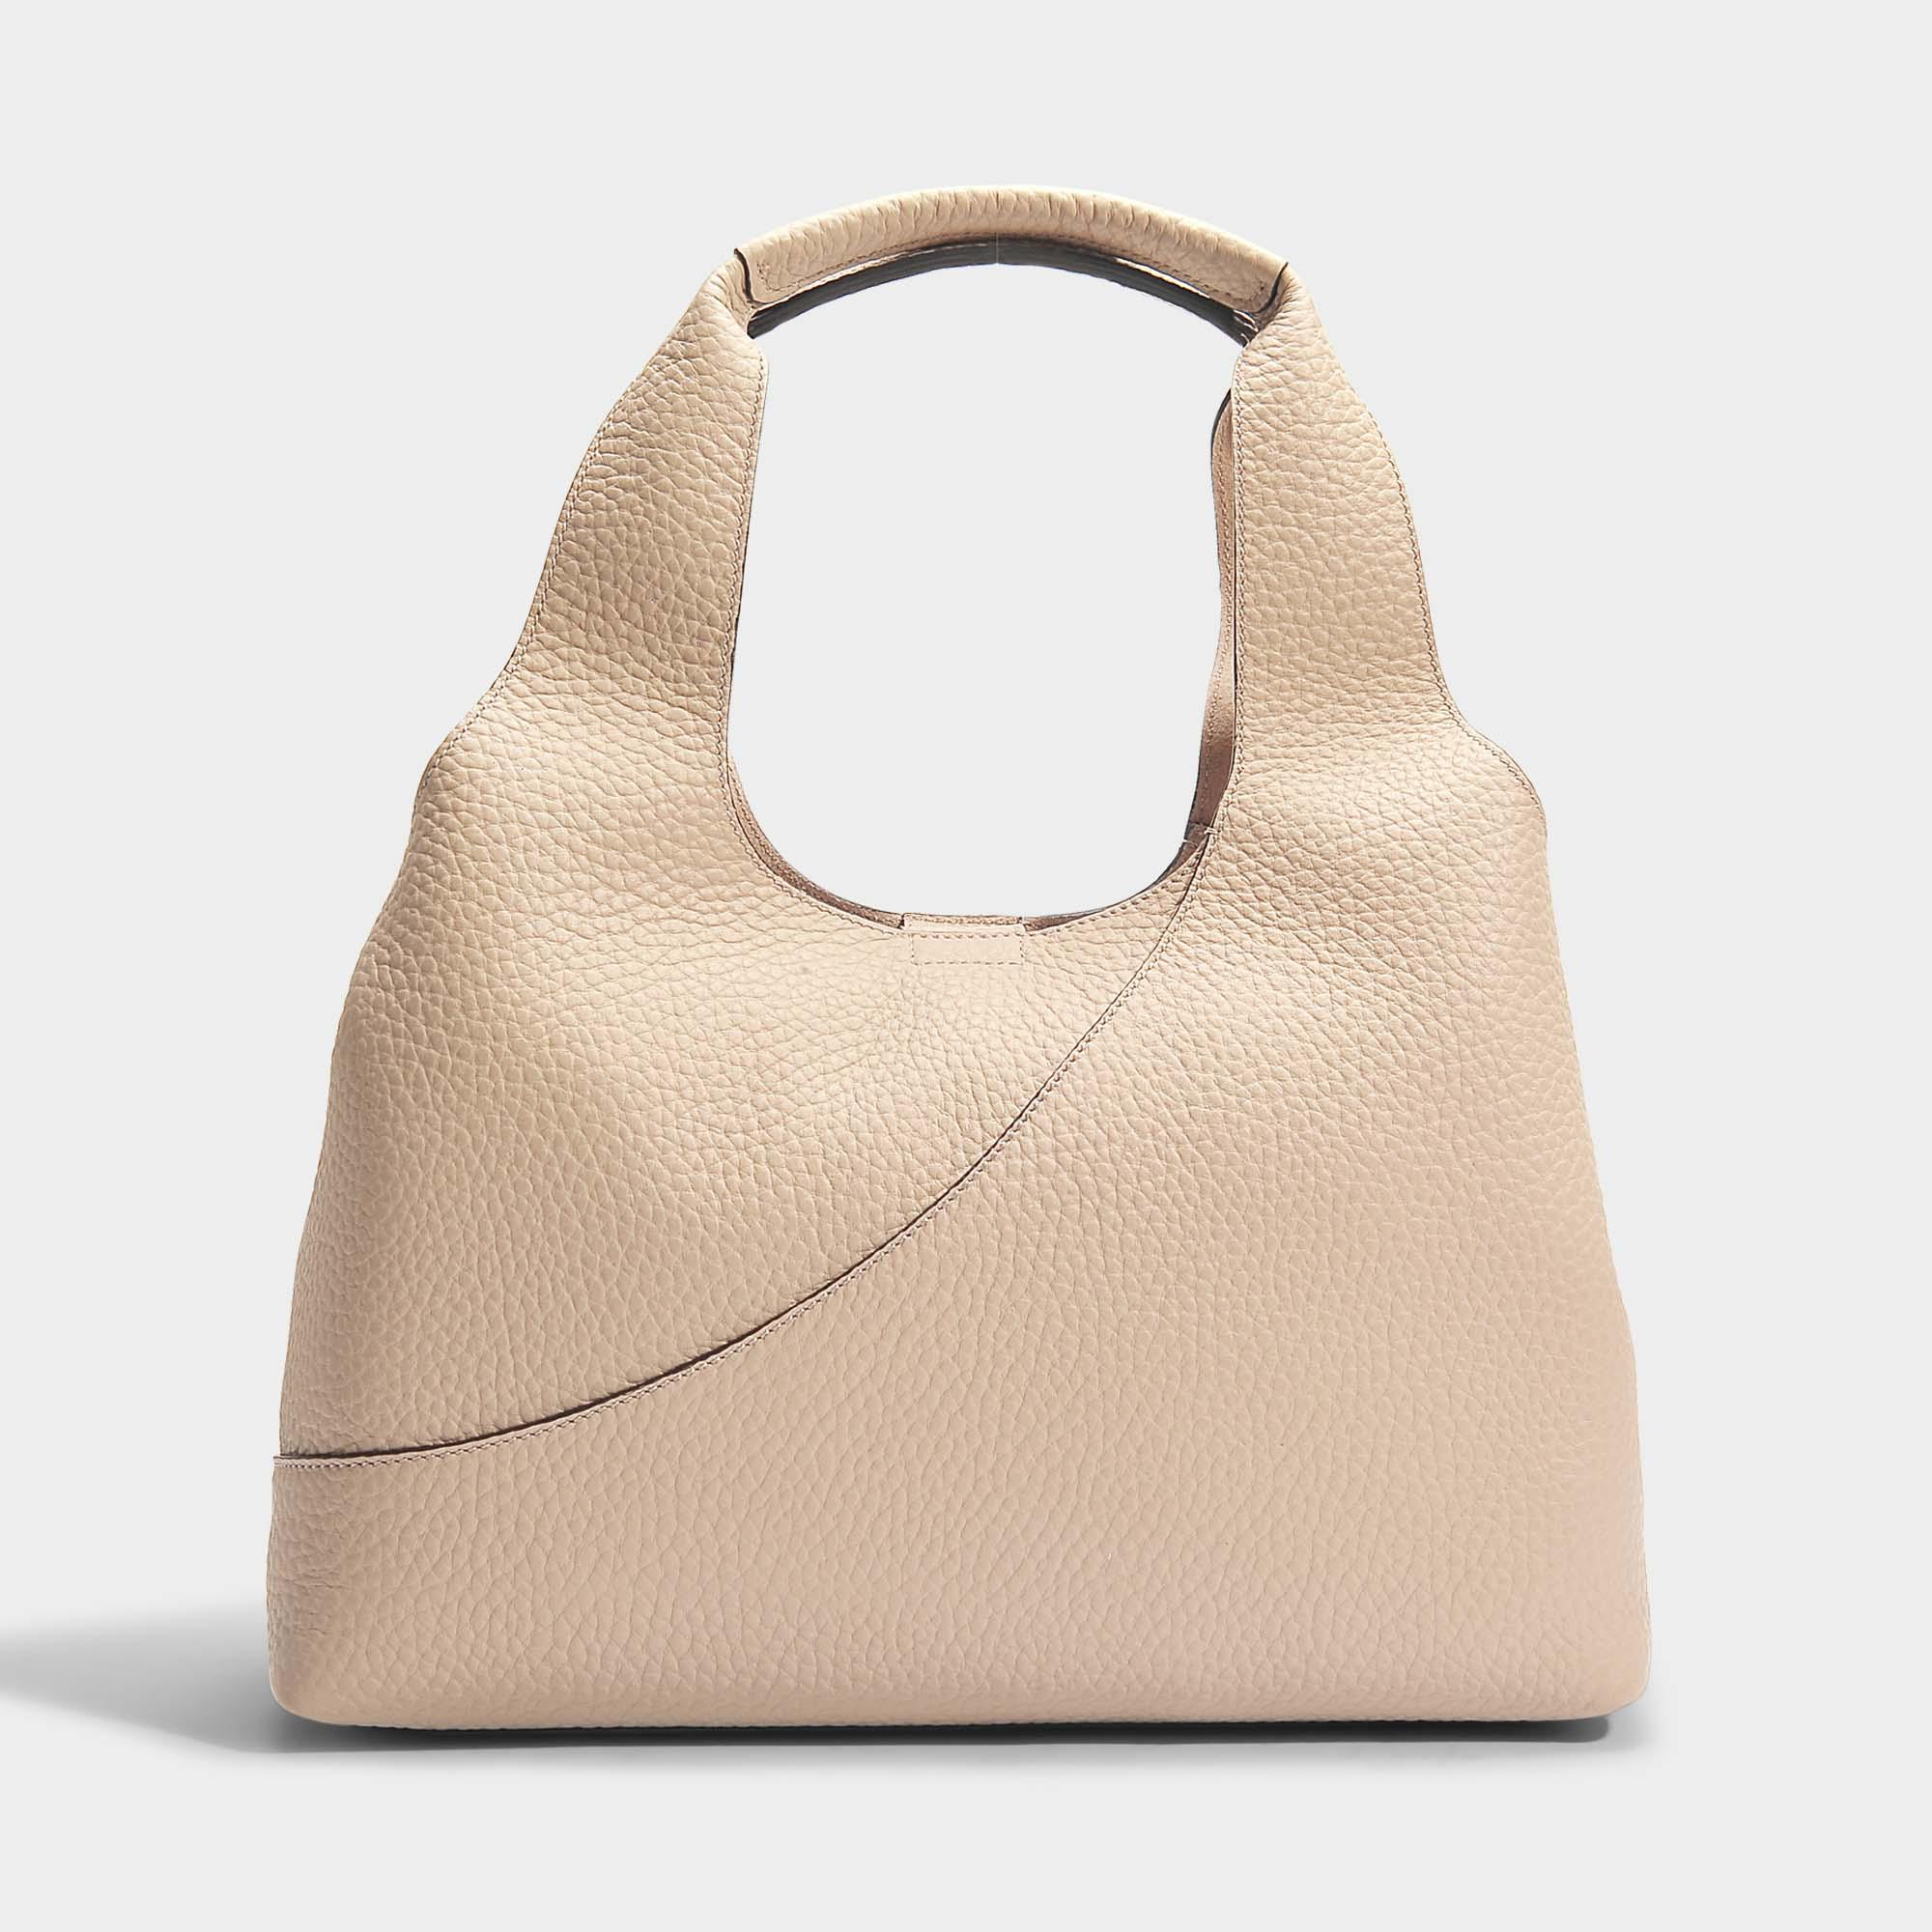 Hogan Horizontal Tote Bag in Multicolour Grained Leather XPSaH1Uos